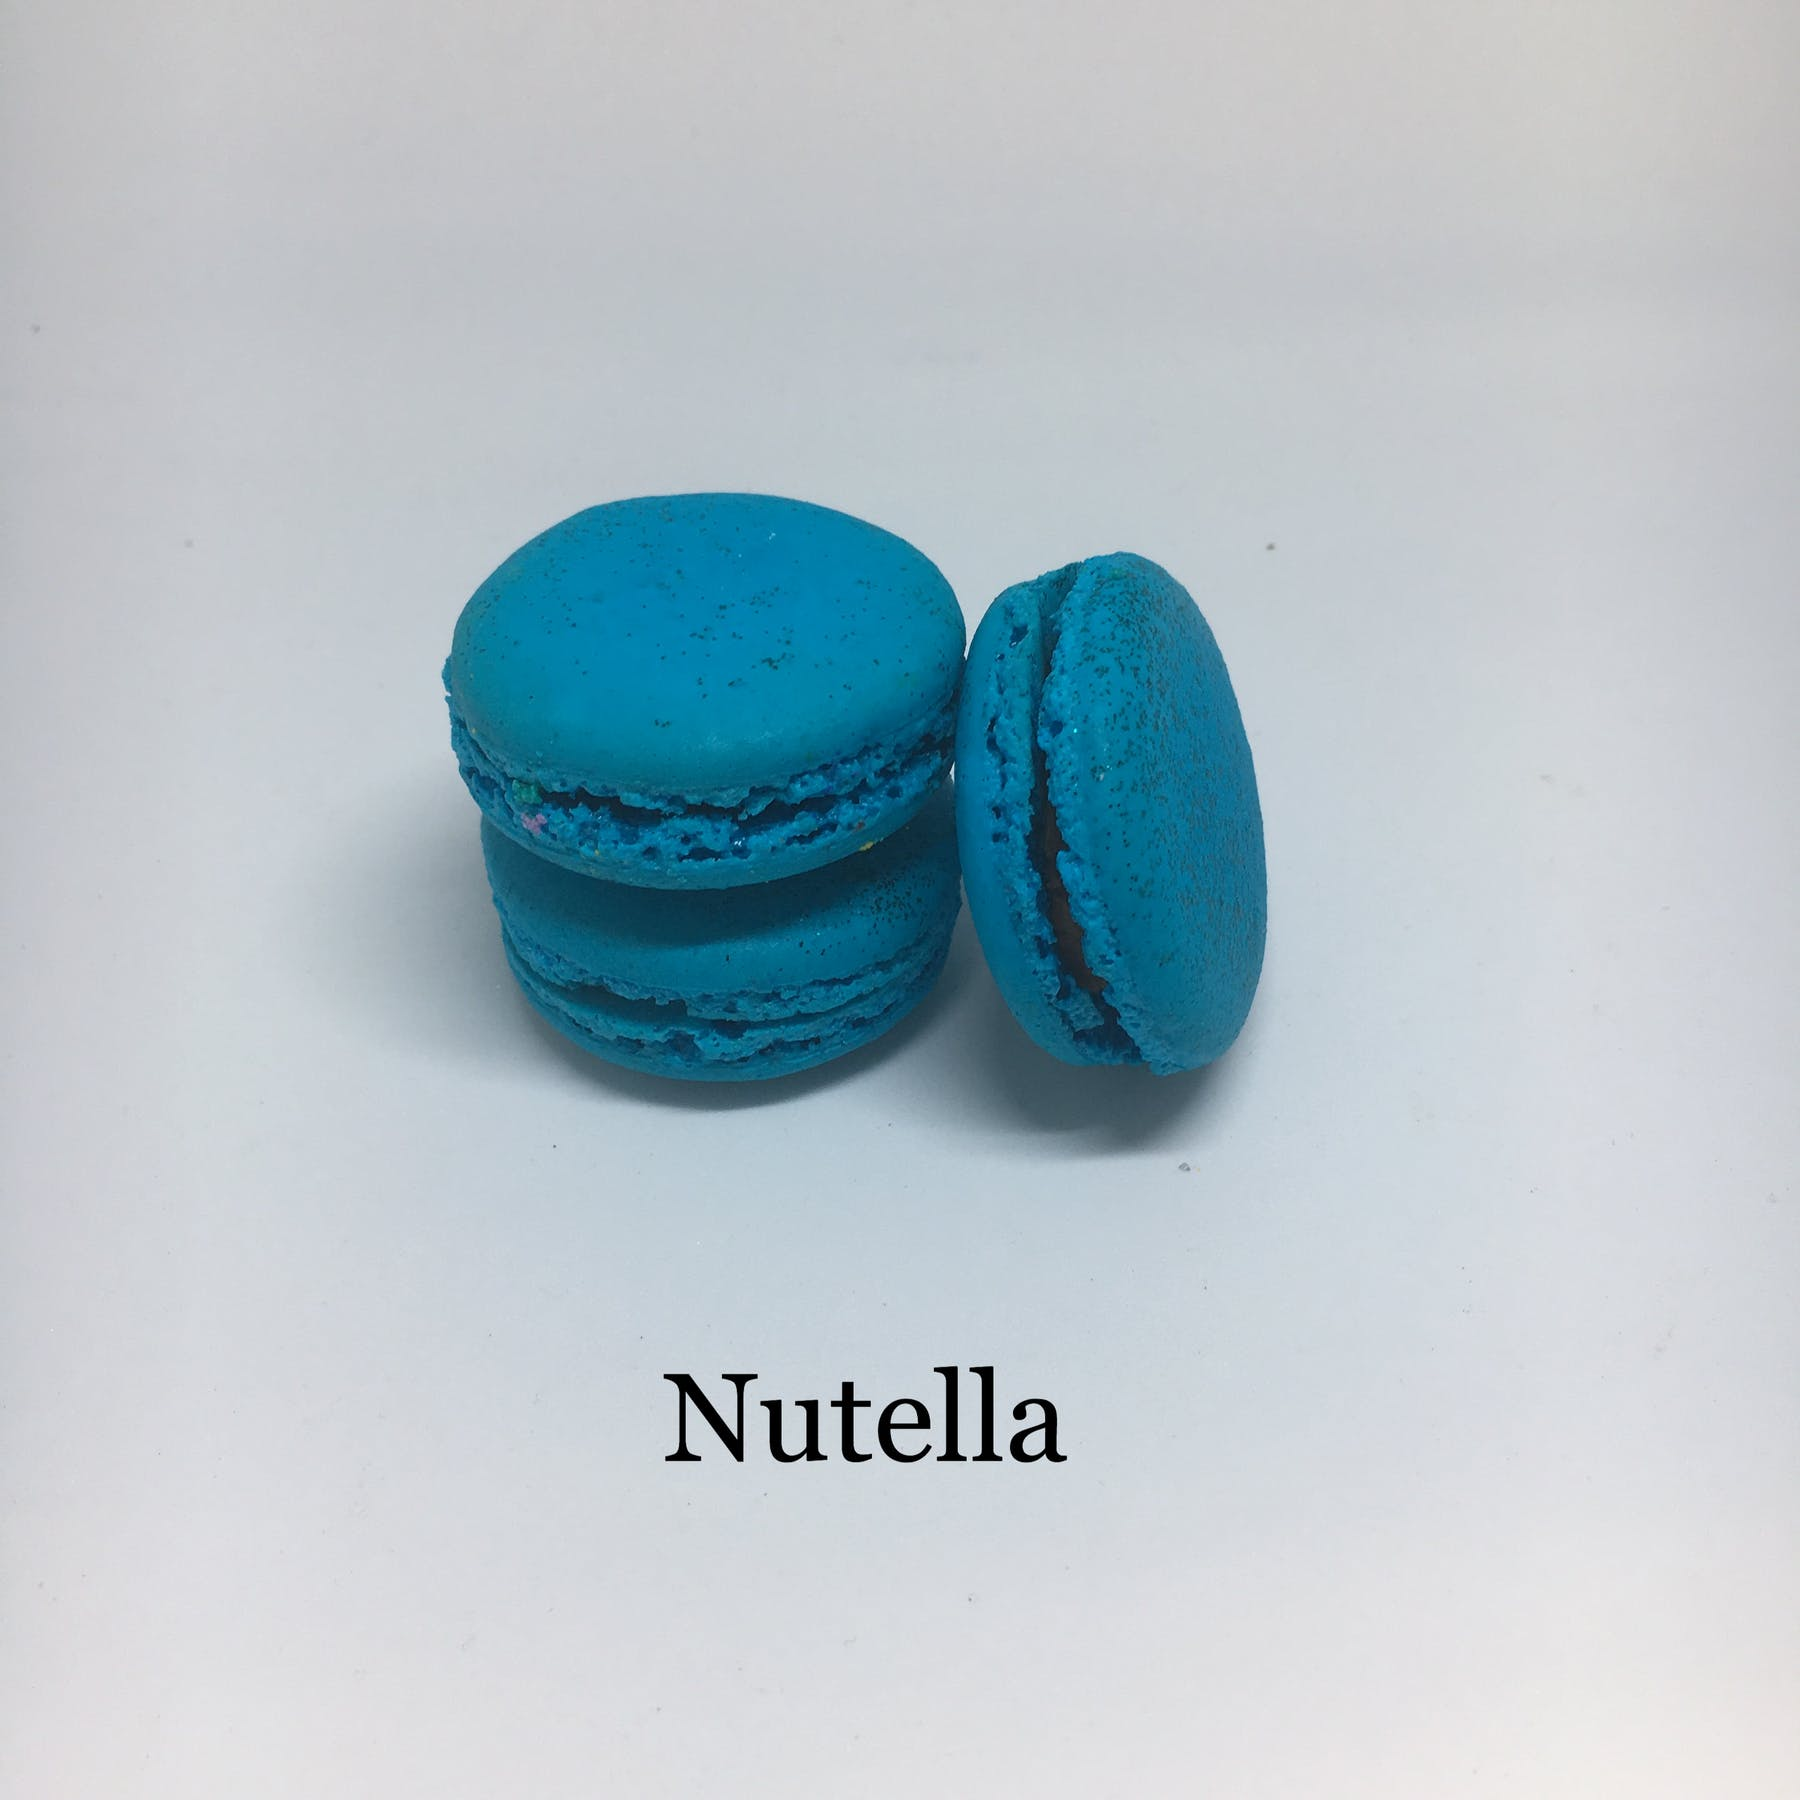 nutella flavored macarons